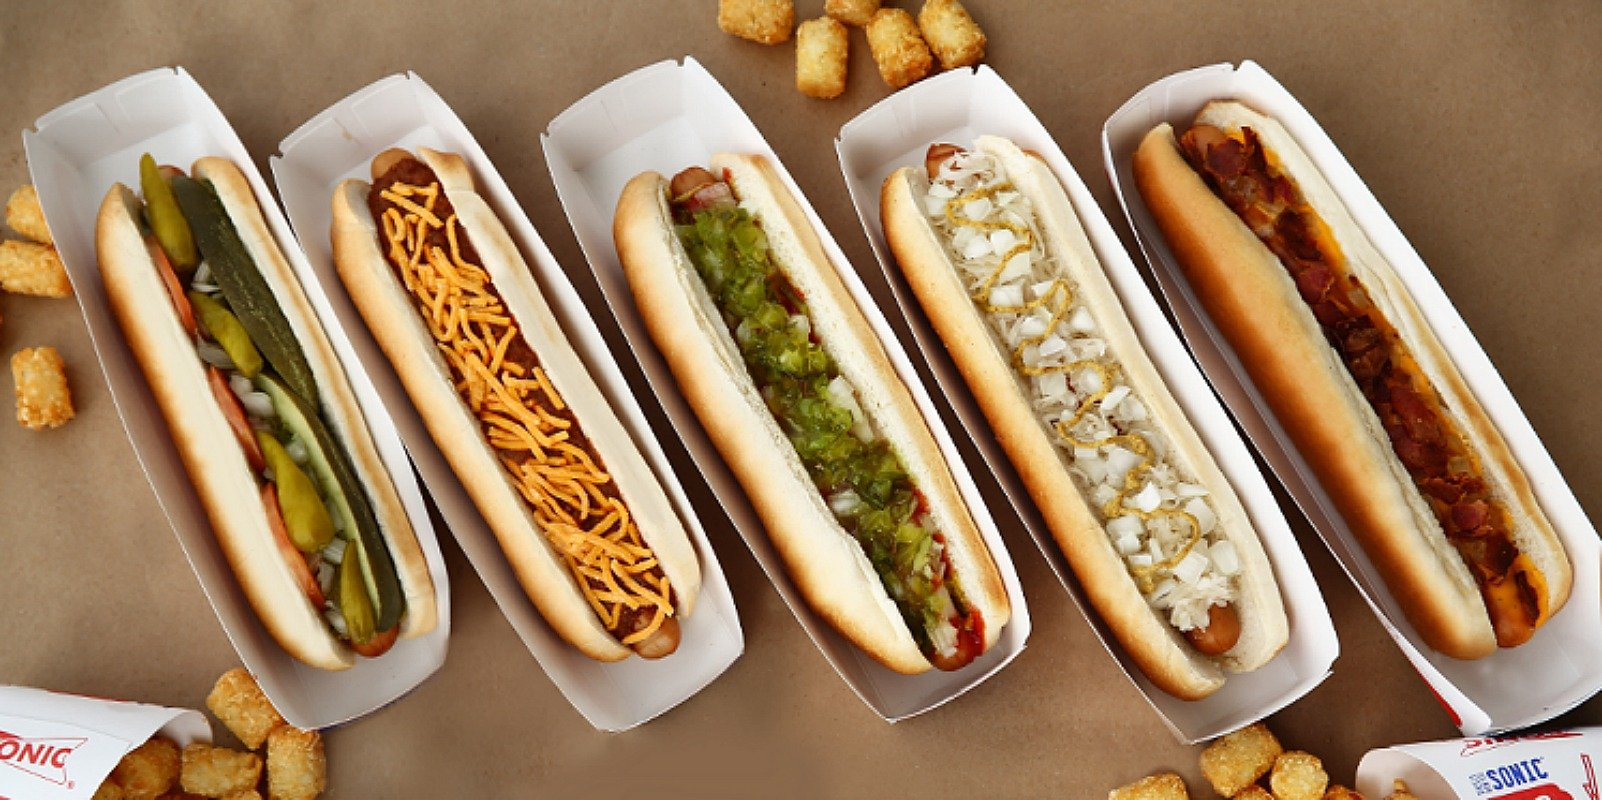 Footlong Quarter Pounder Coney Just $1.99 This Month at Sonic